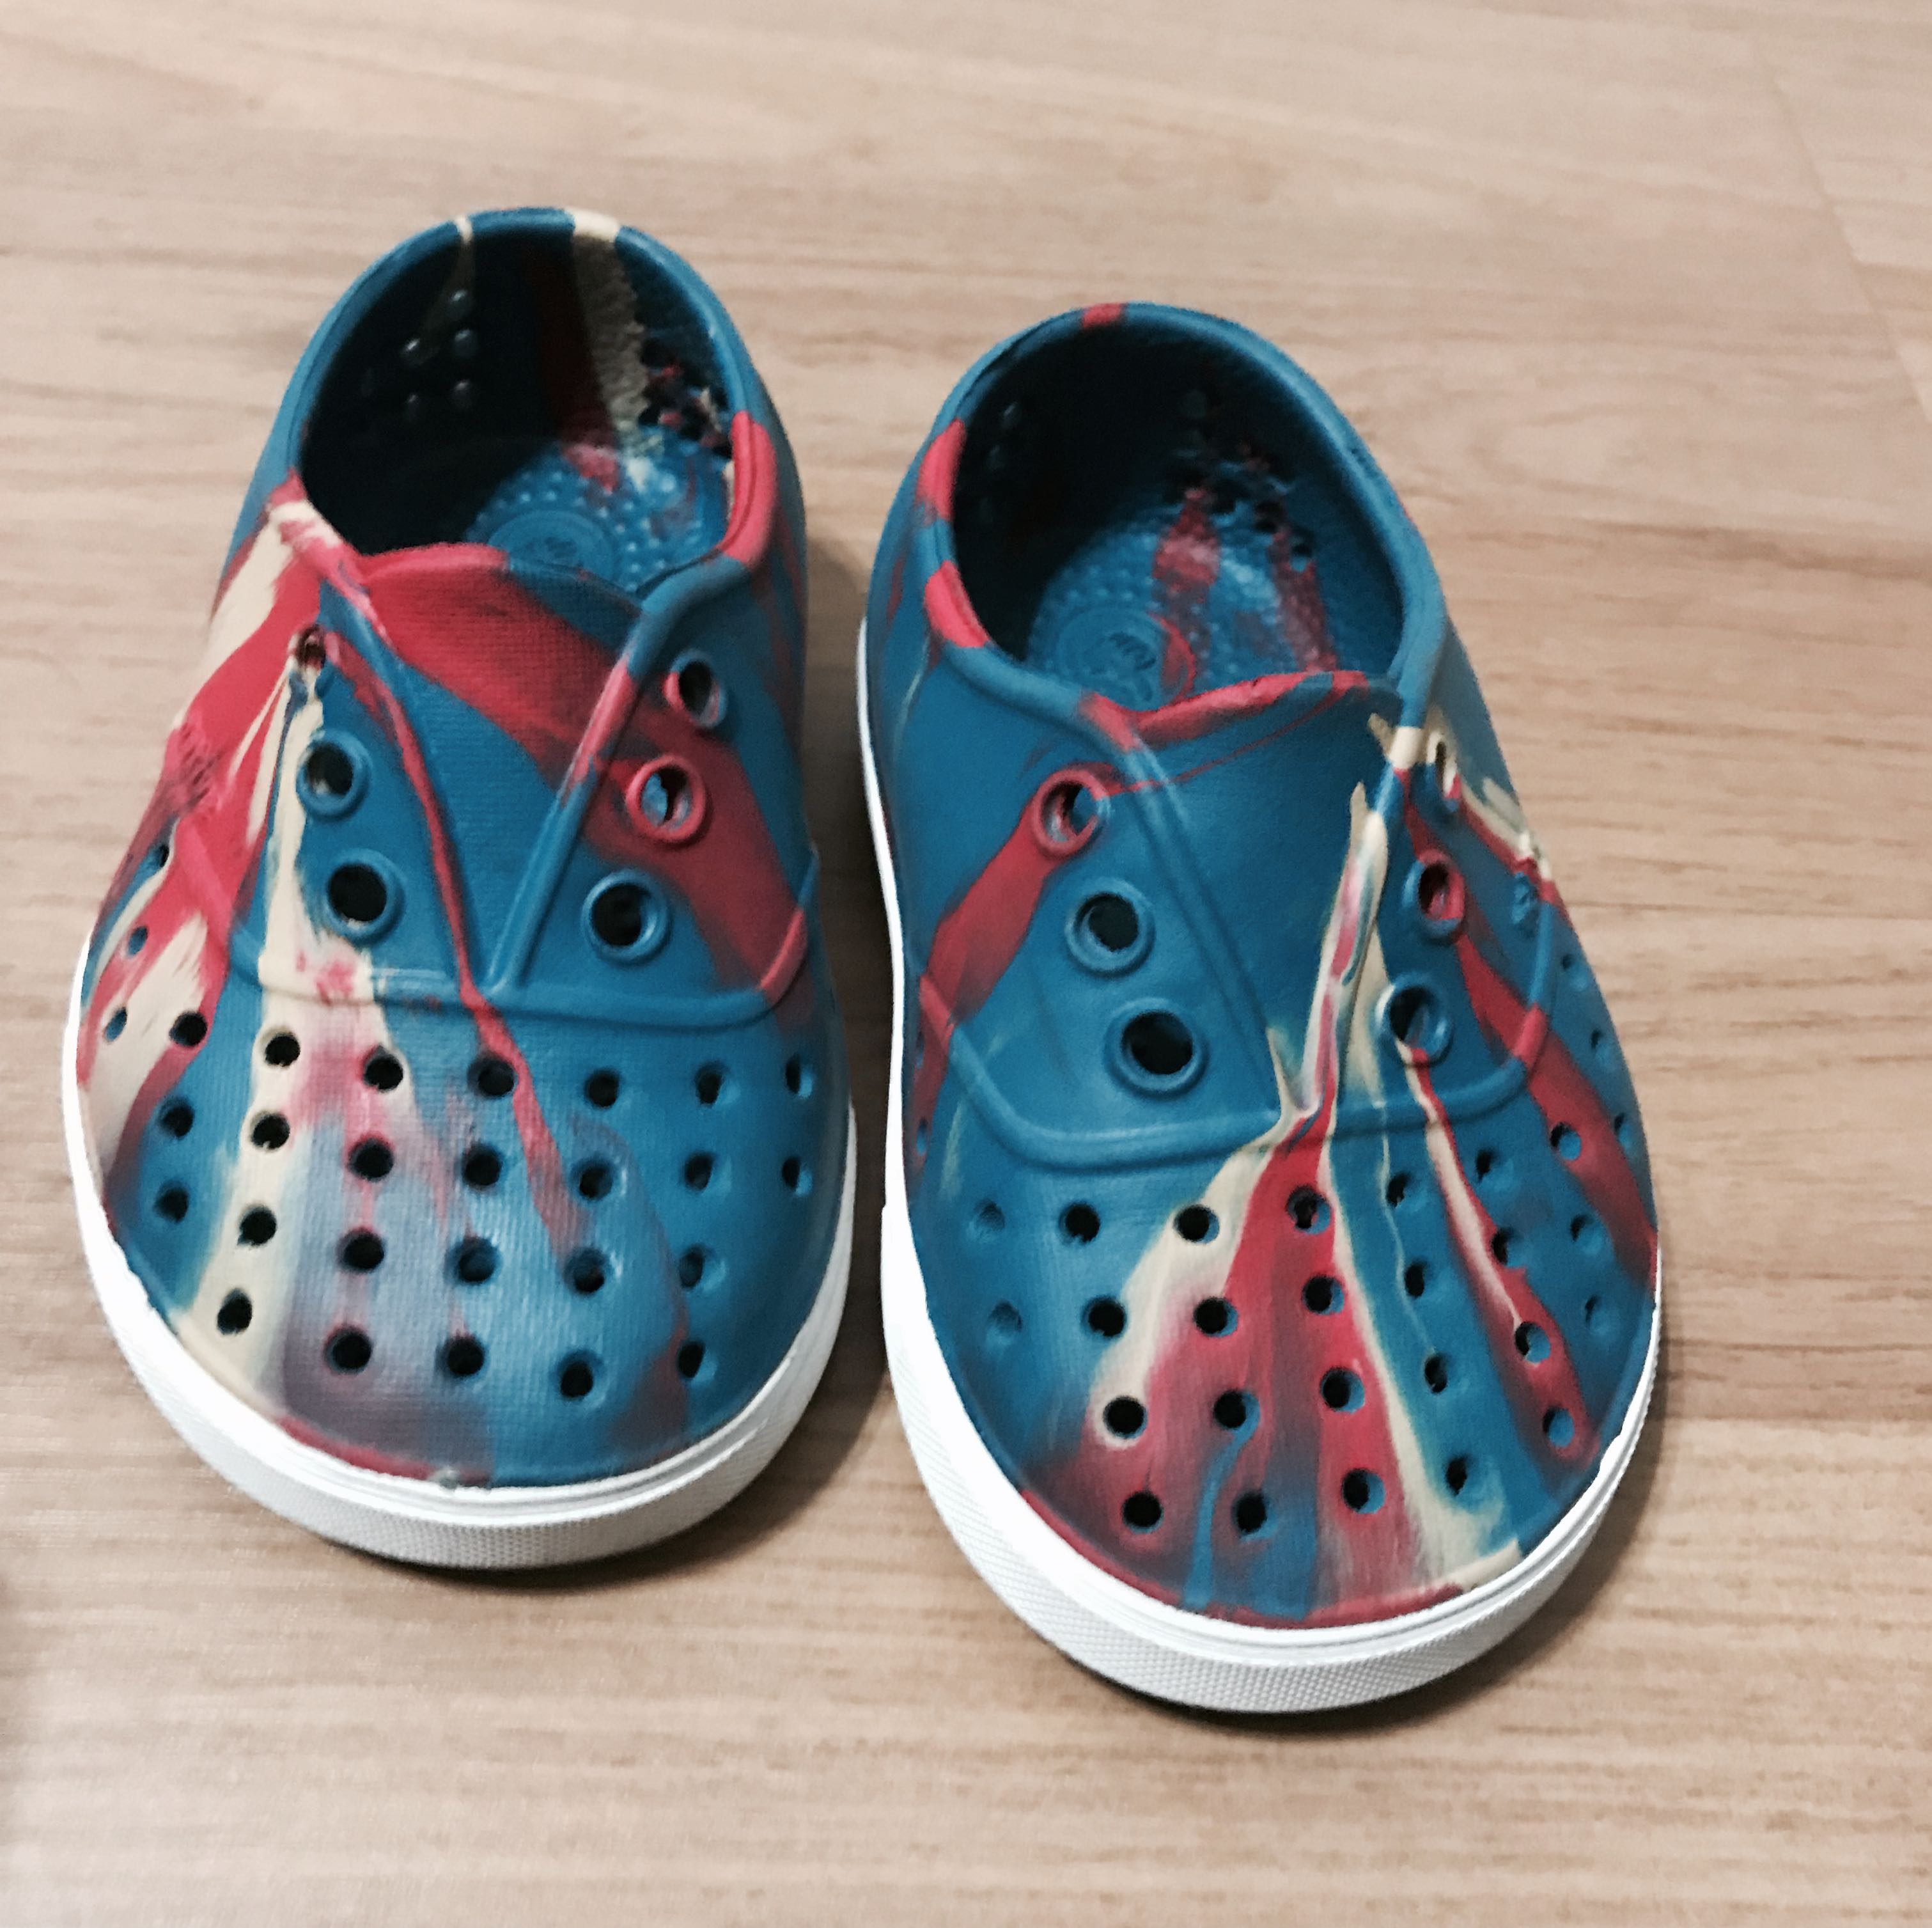 Native Baby Shoes Babies Kids Boys Apparel 1 To 3 Years On